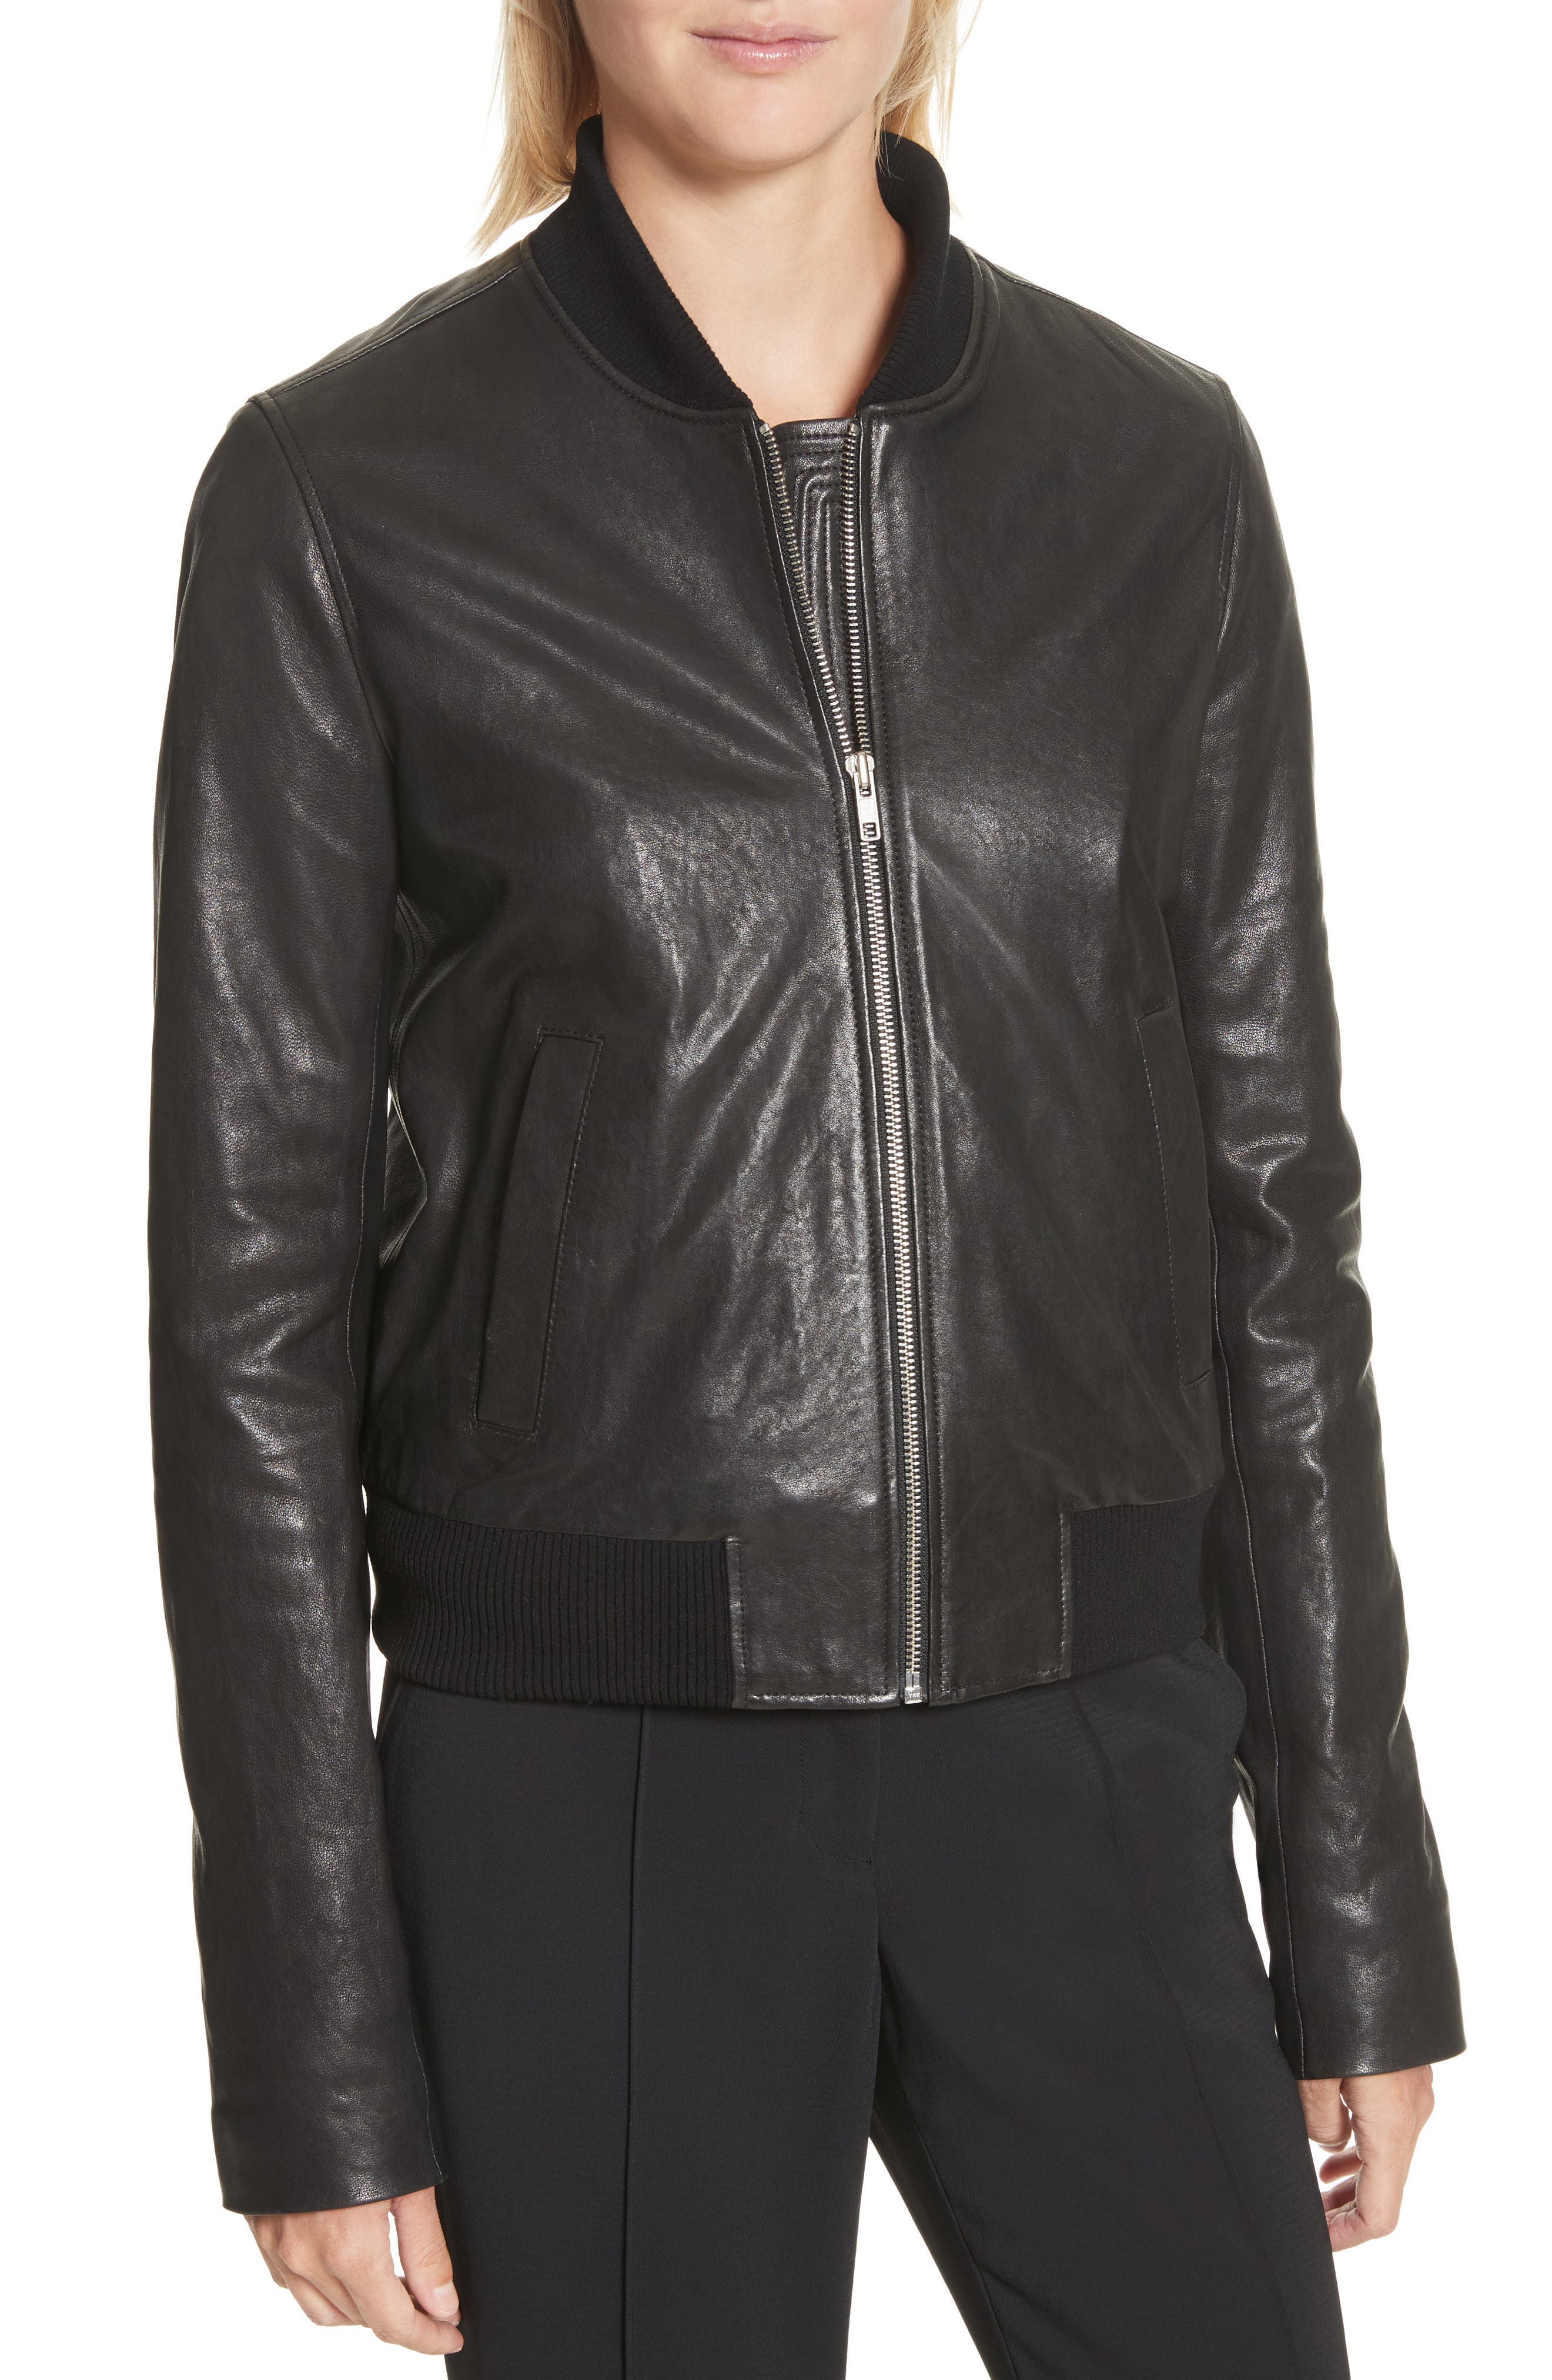 Edison Leather Jacket with Removable Hooded Inset,                             Alternate thumbnail 4, color,                             001